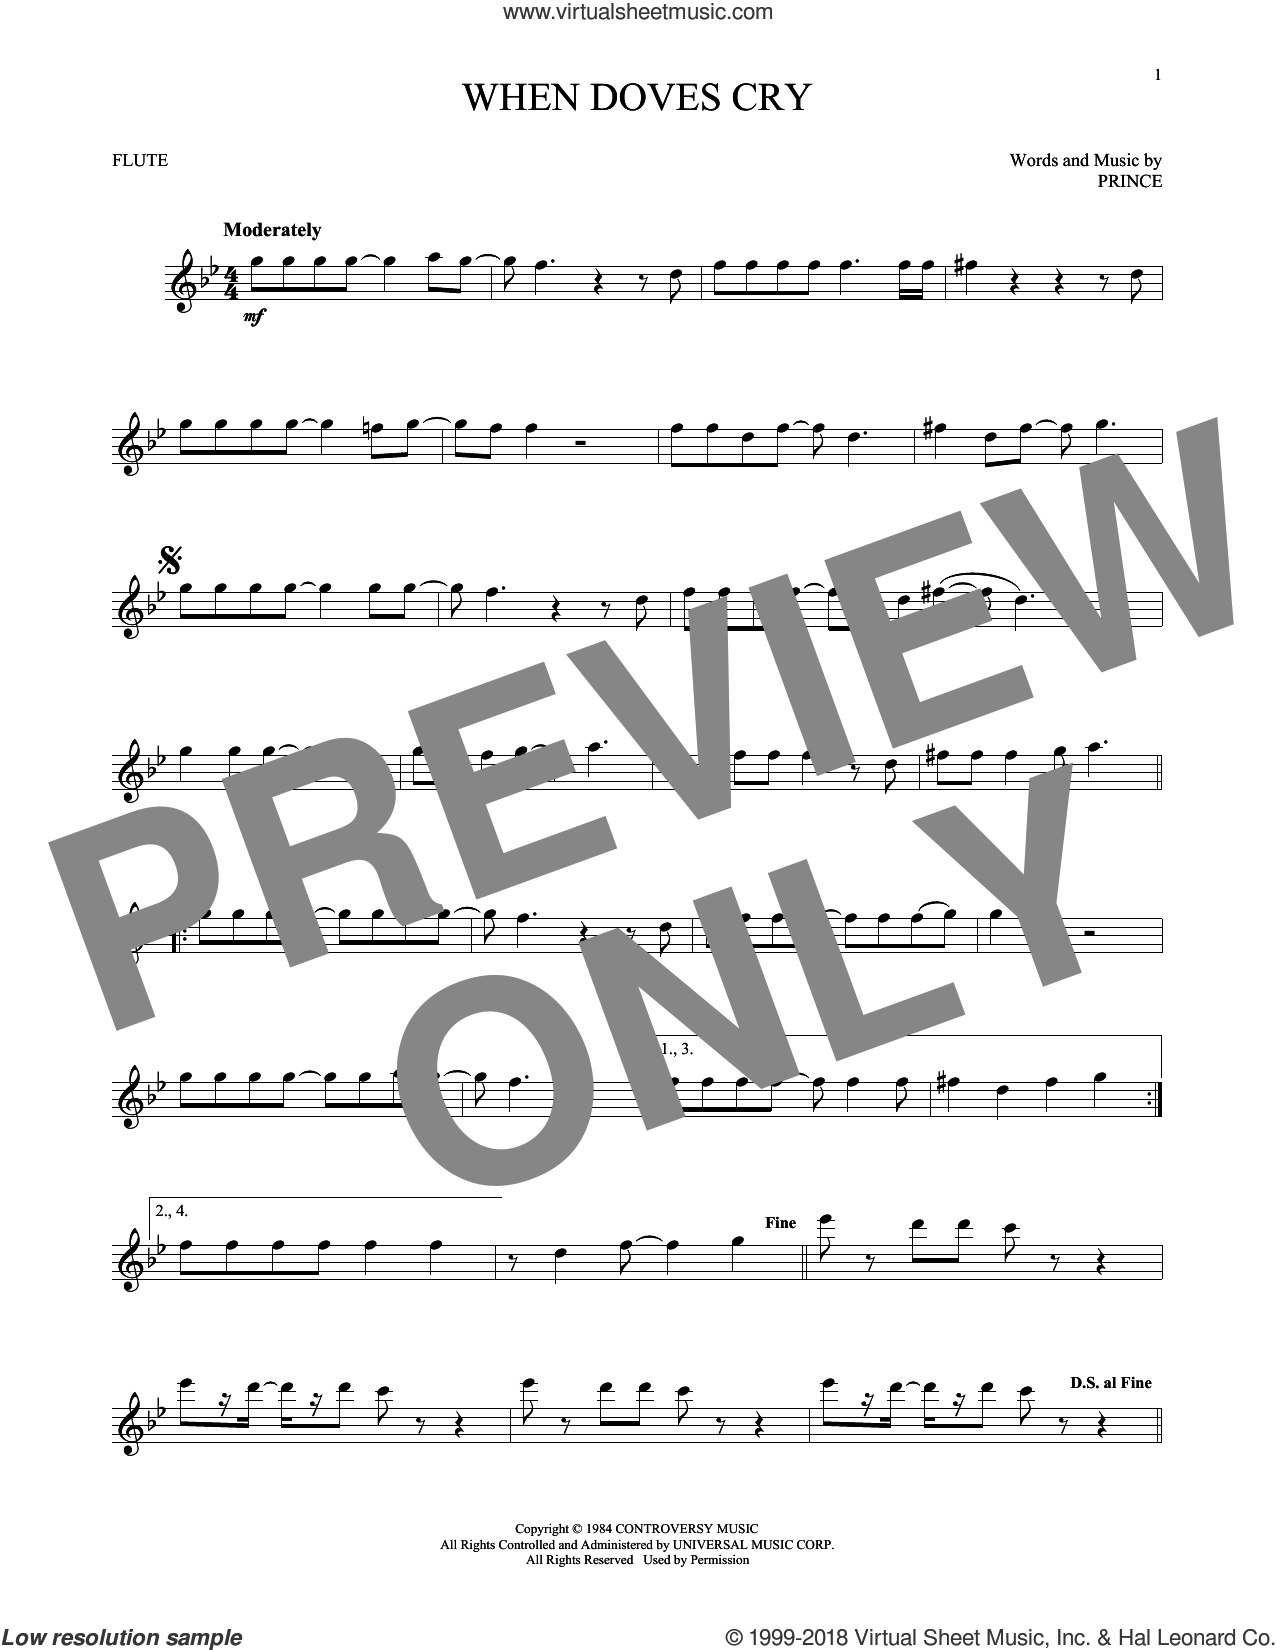 When Doves Cry sheet music for flute solo by Prince, intermediate skill level